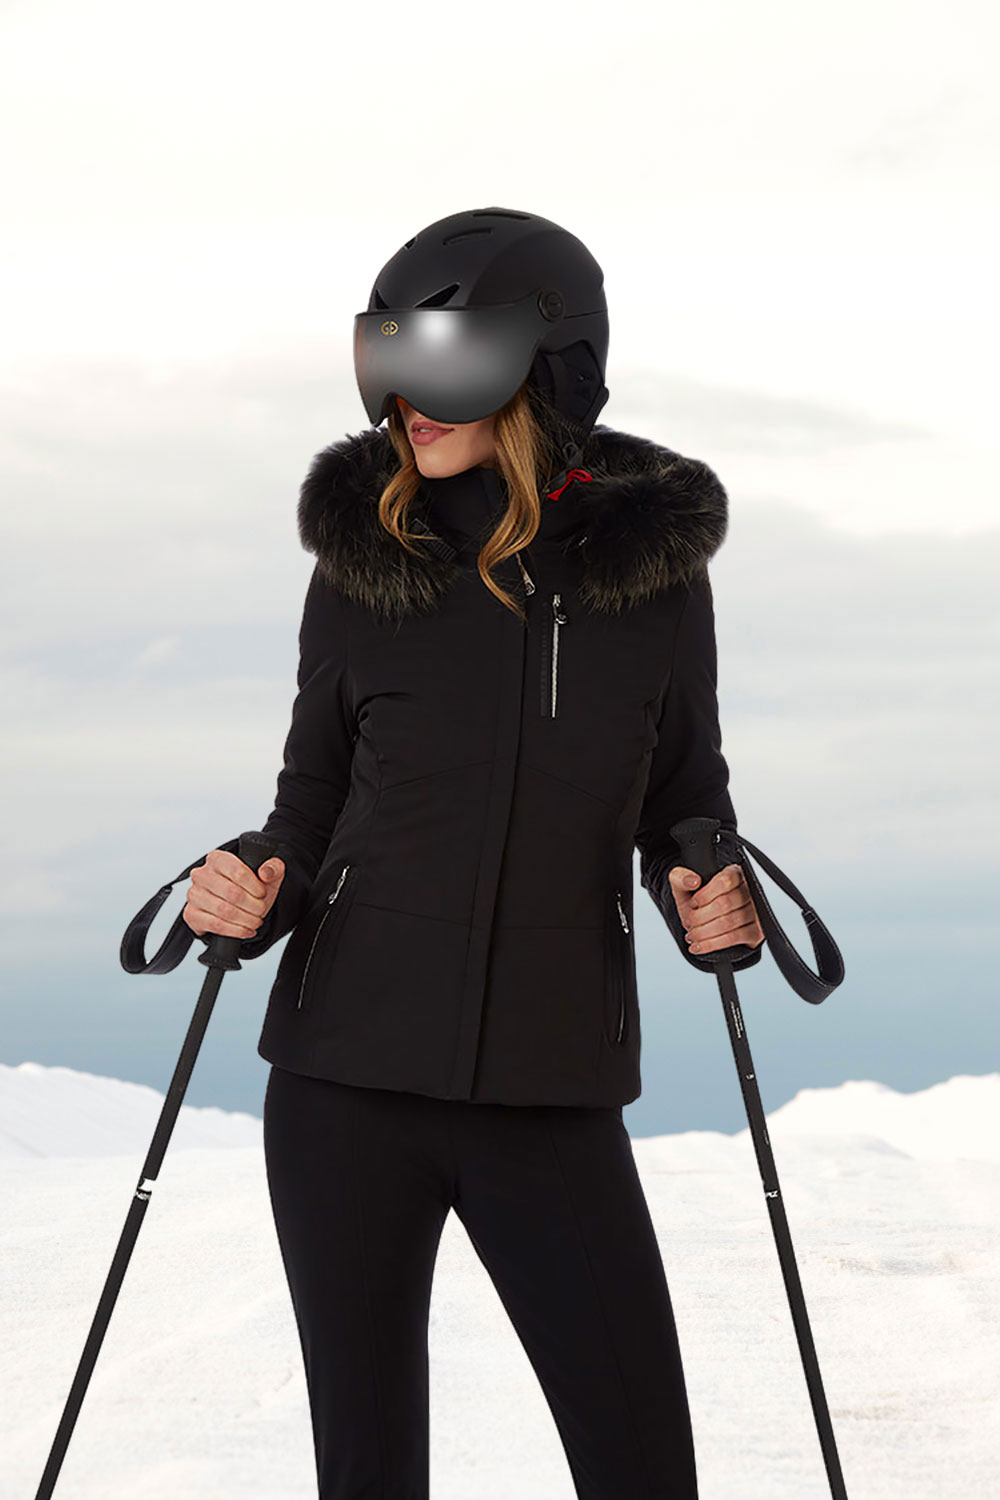 Poivre Blanc ski wear for women at Winternational